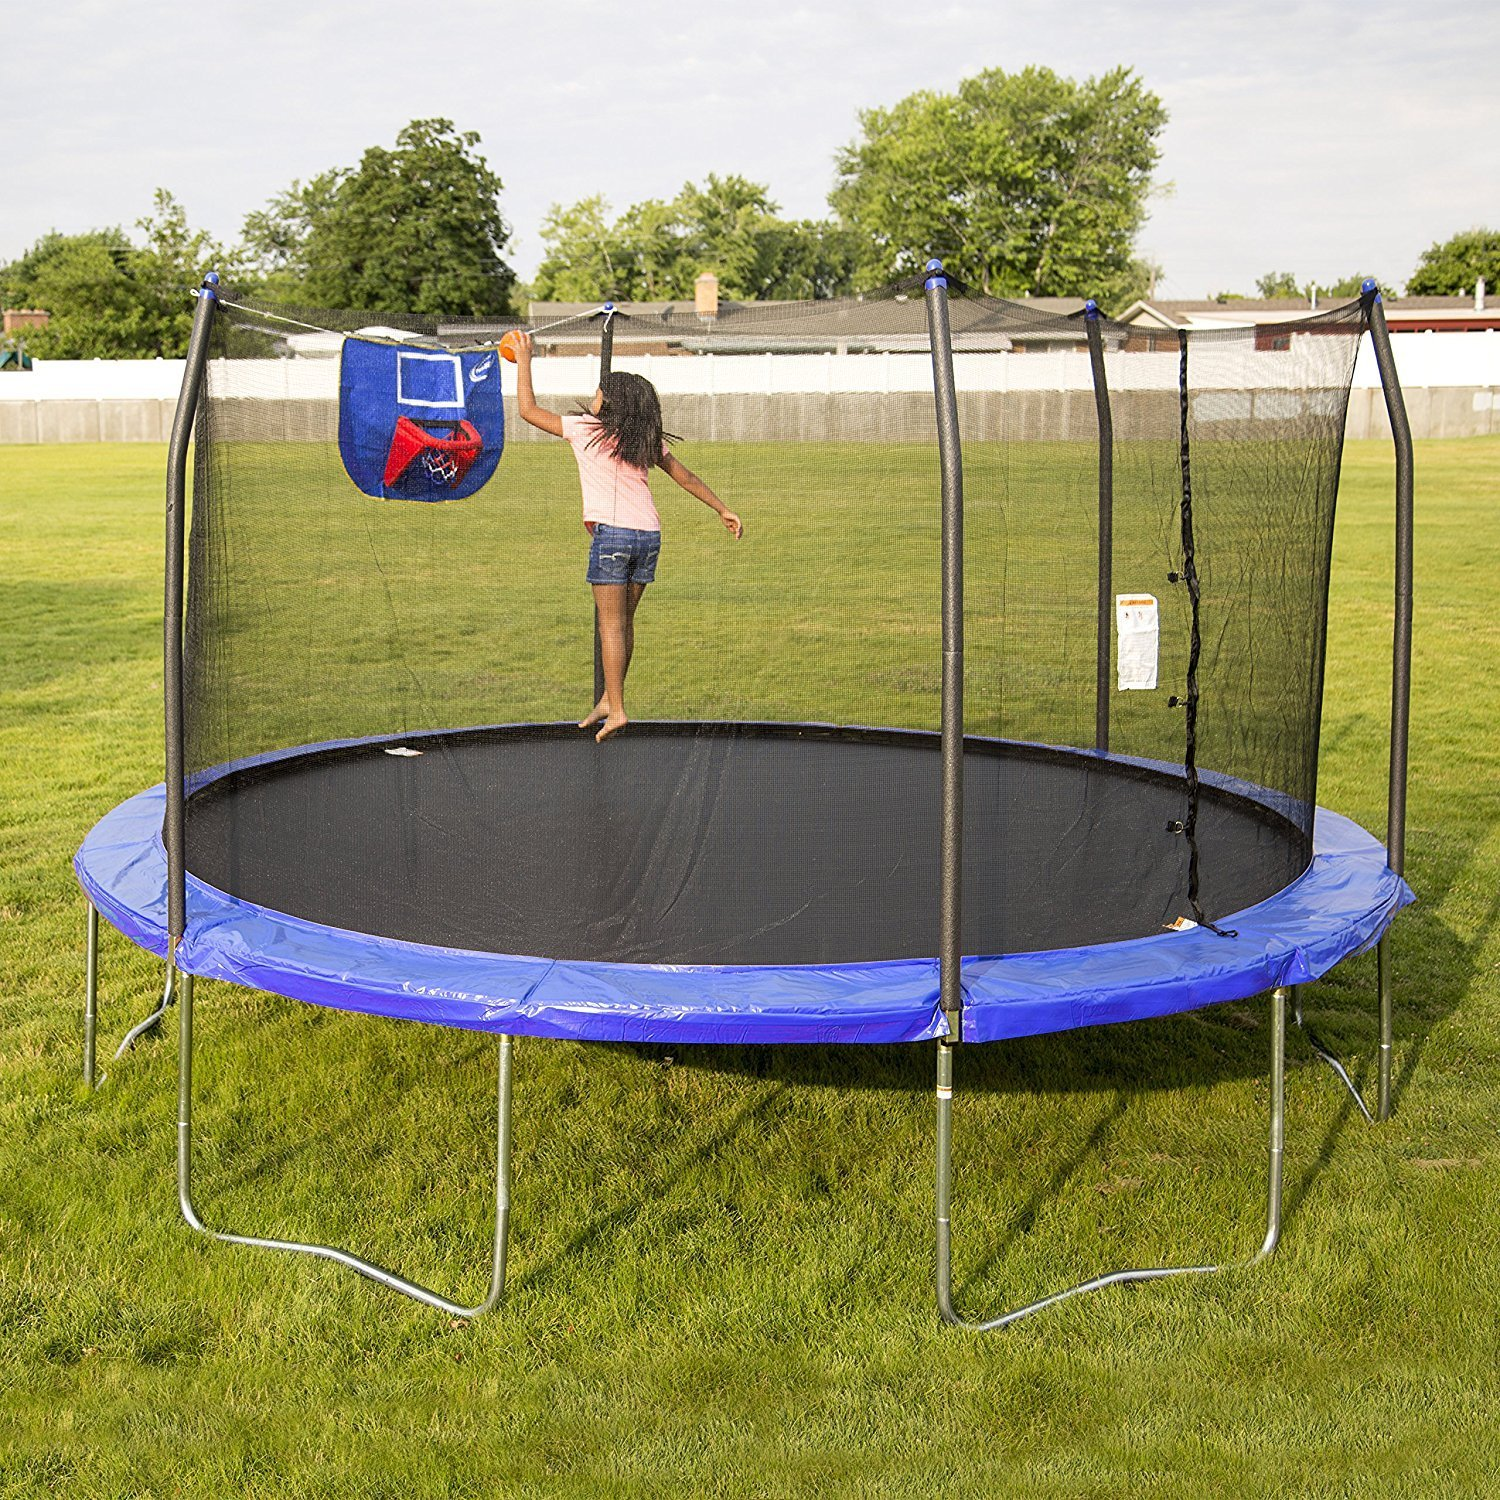 best trampoline toy for 6 year old girl